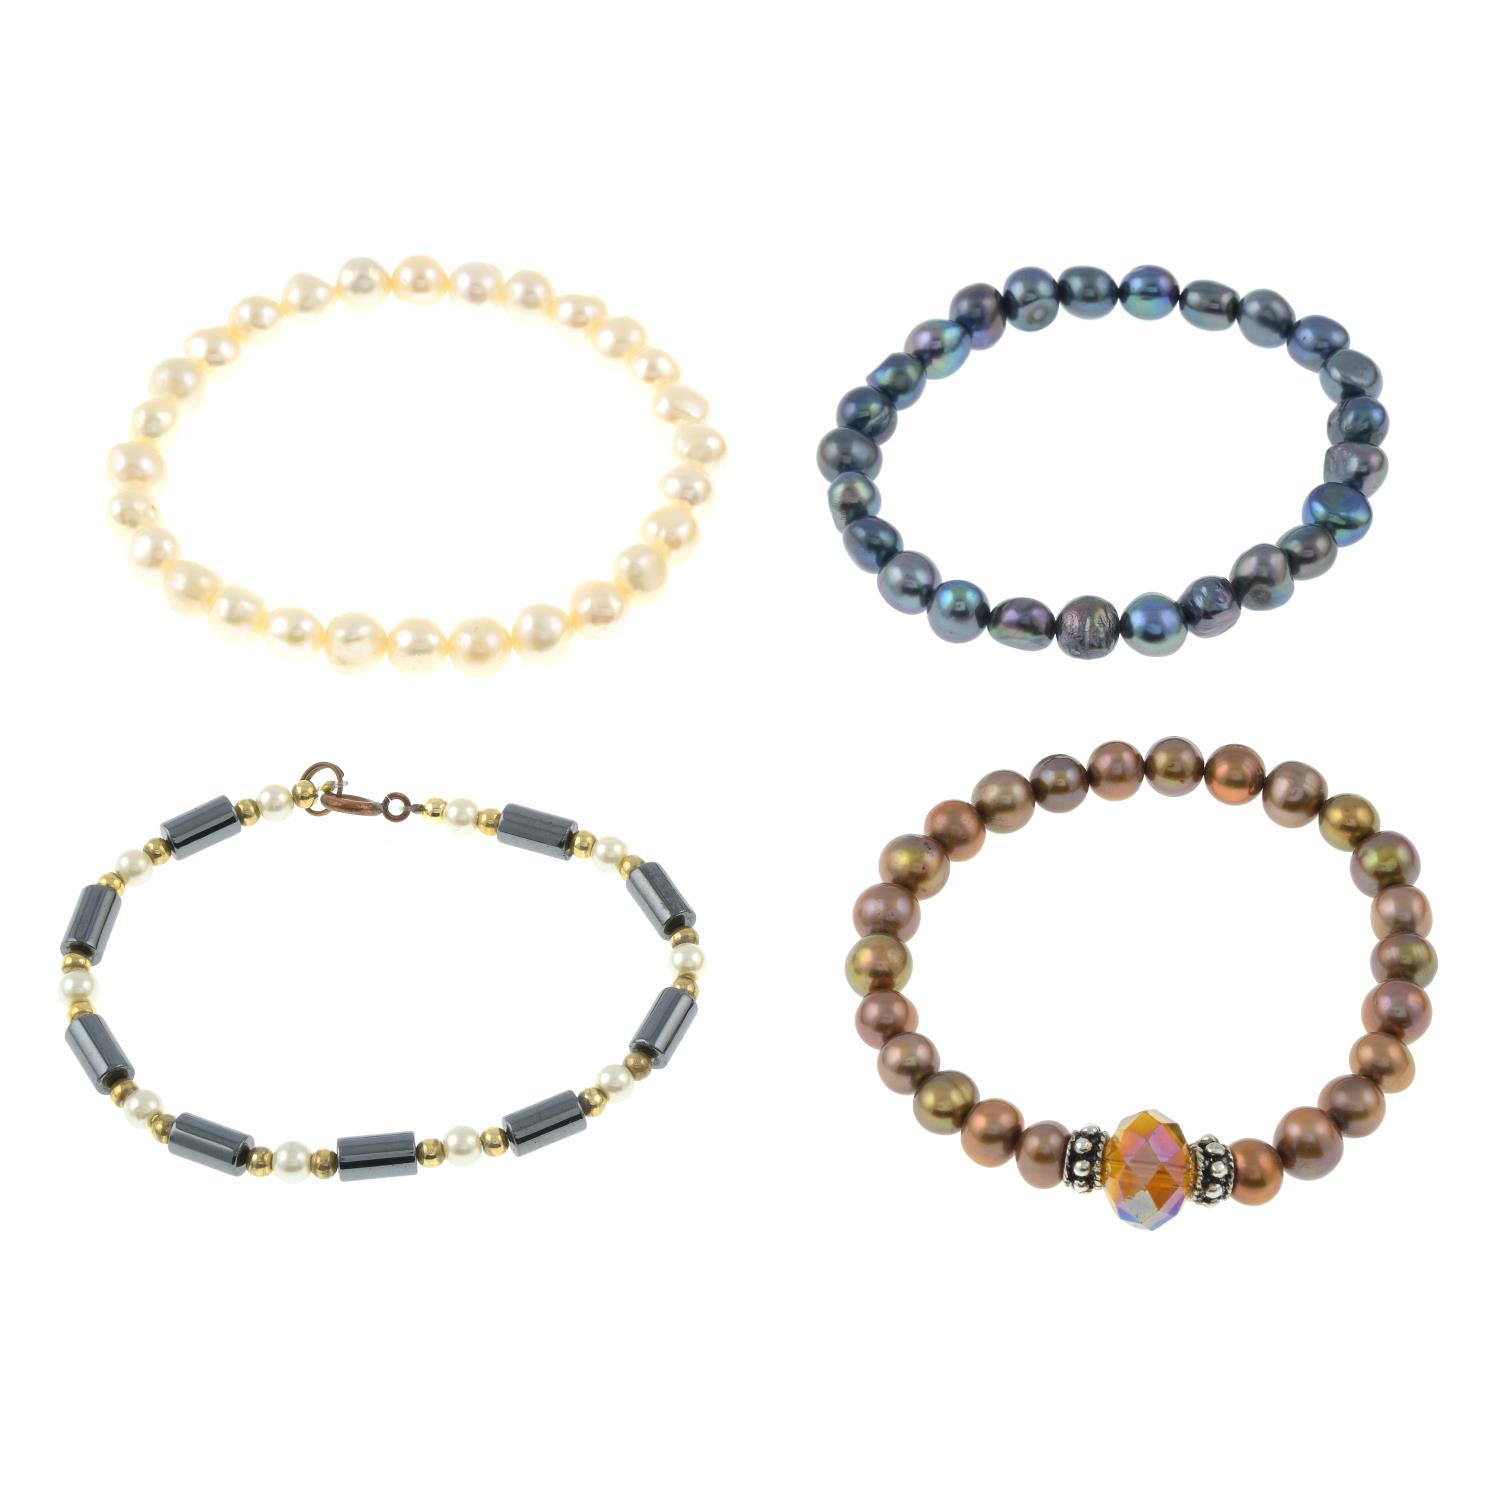 A freshwater pearl five strand necklace and fourteen cultured pearl bracelets.Length of necklace